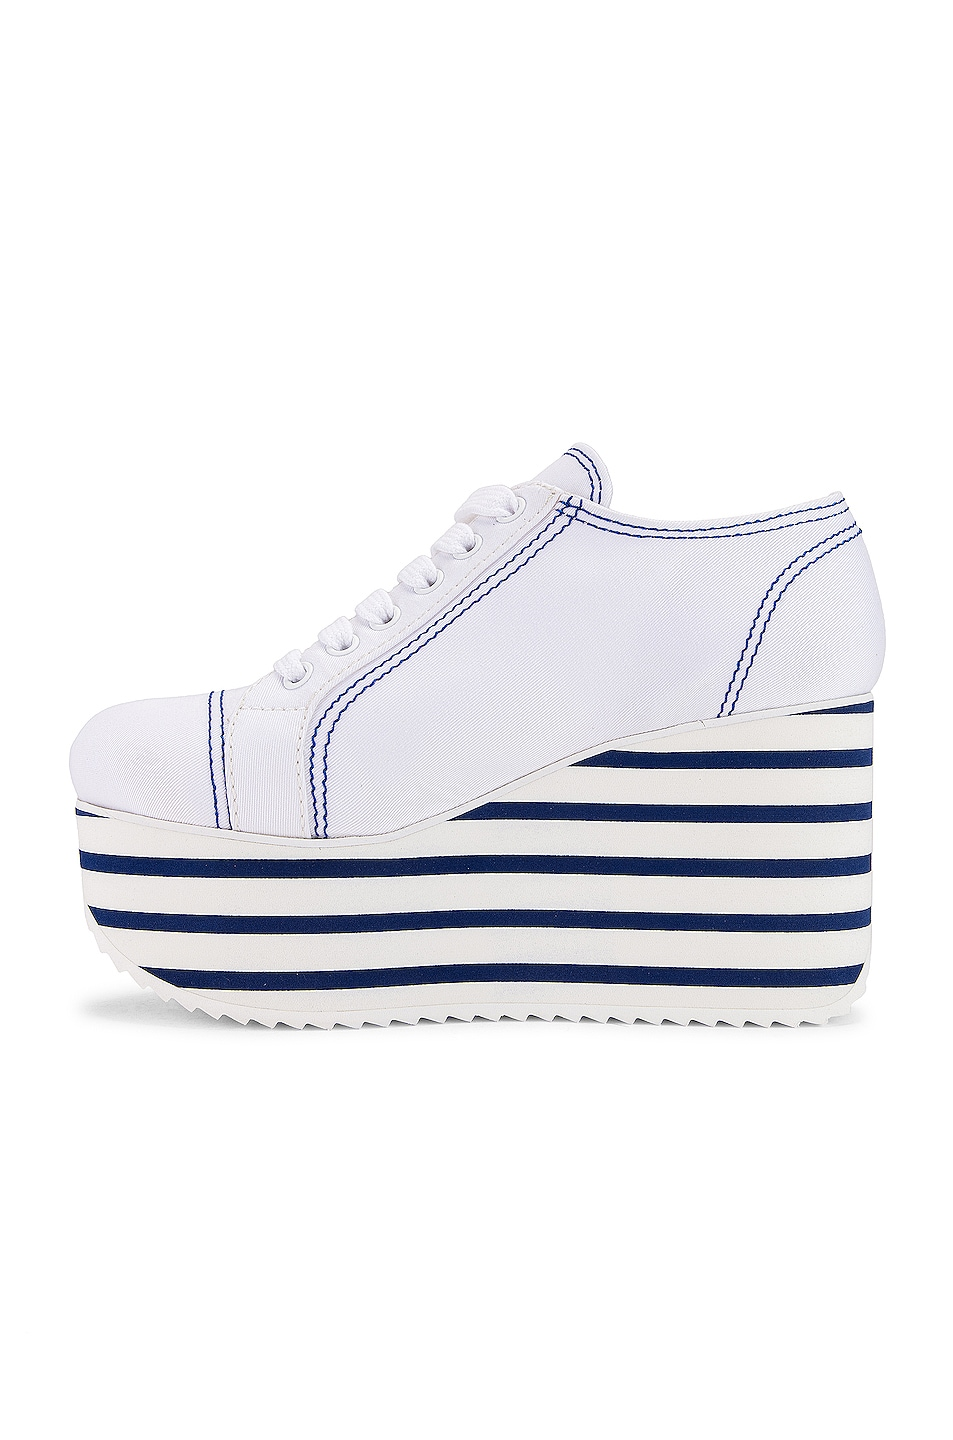 Image 5 of Miu Miu Platform Sneakers in Bianco & Bluette